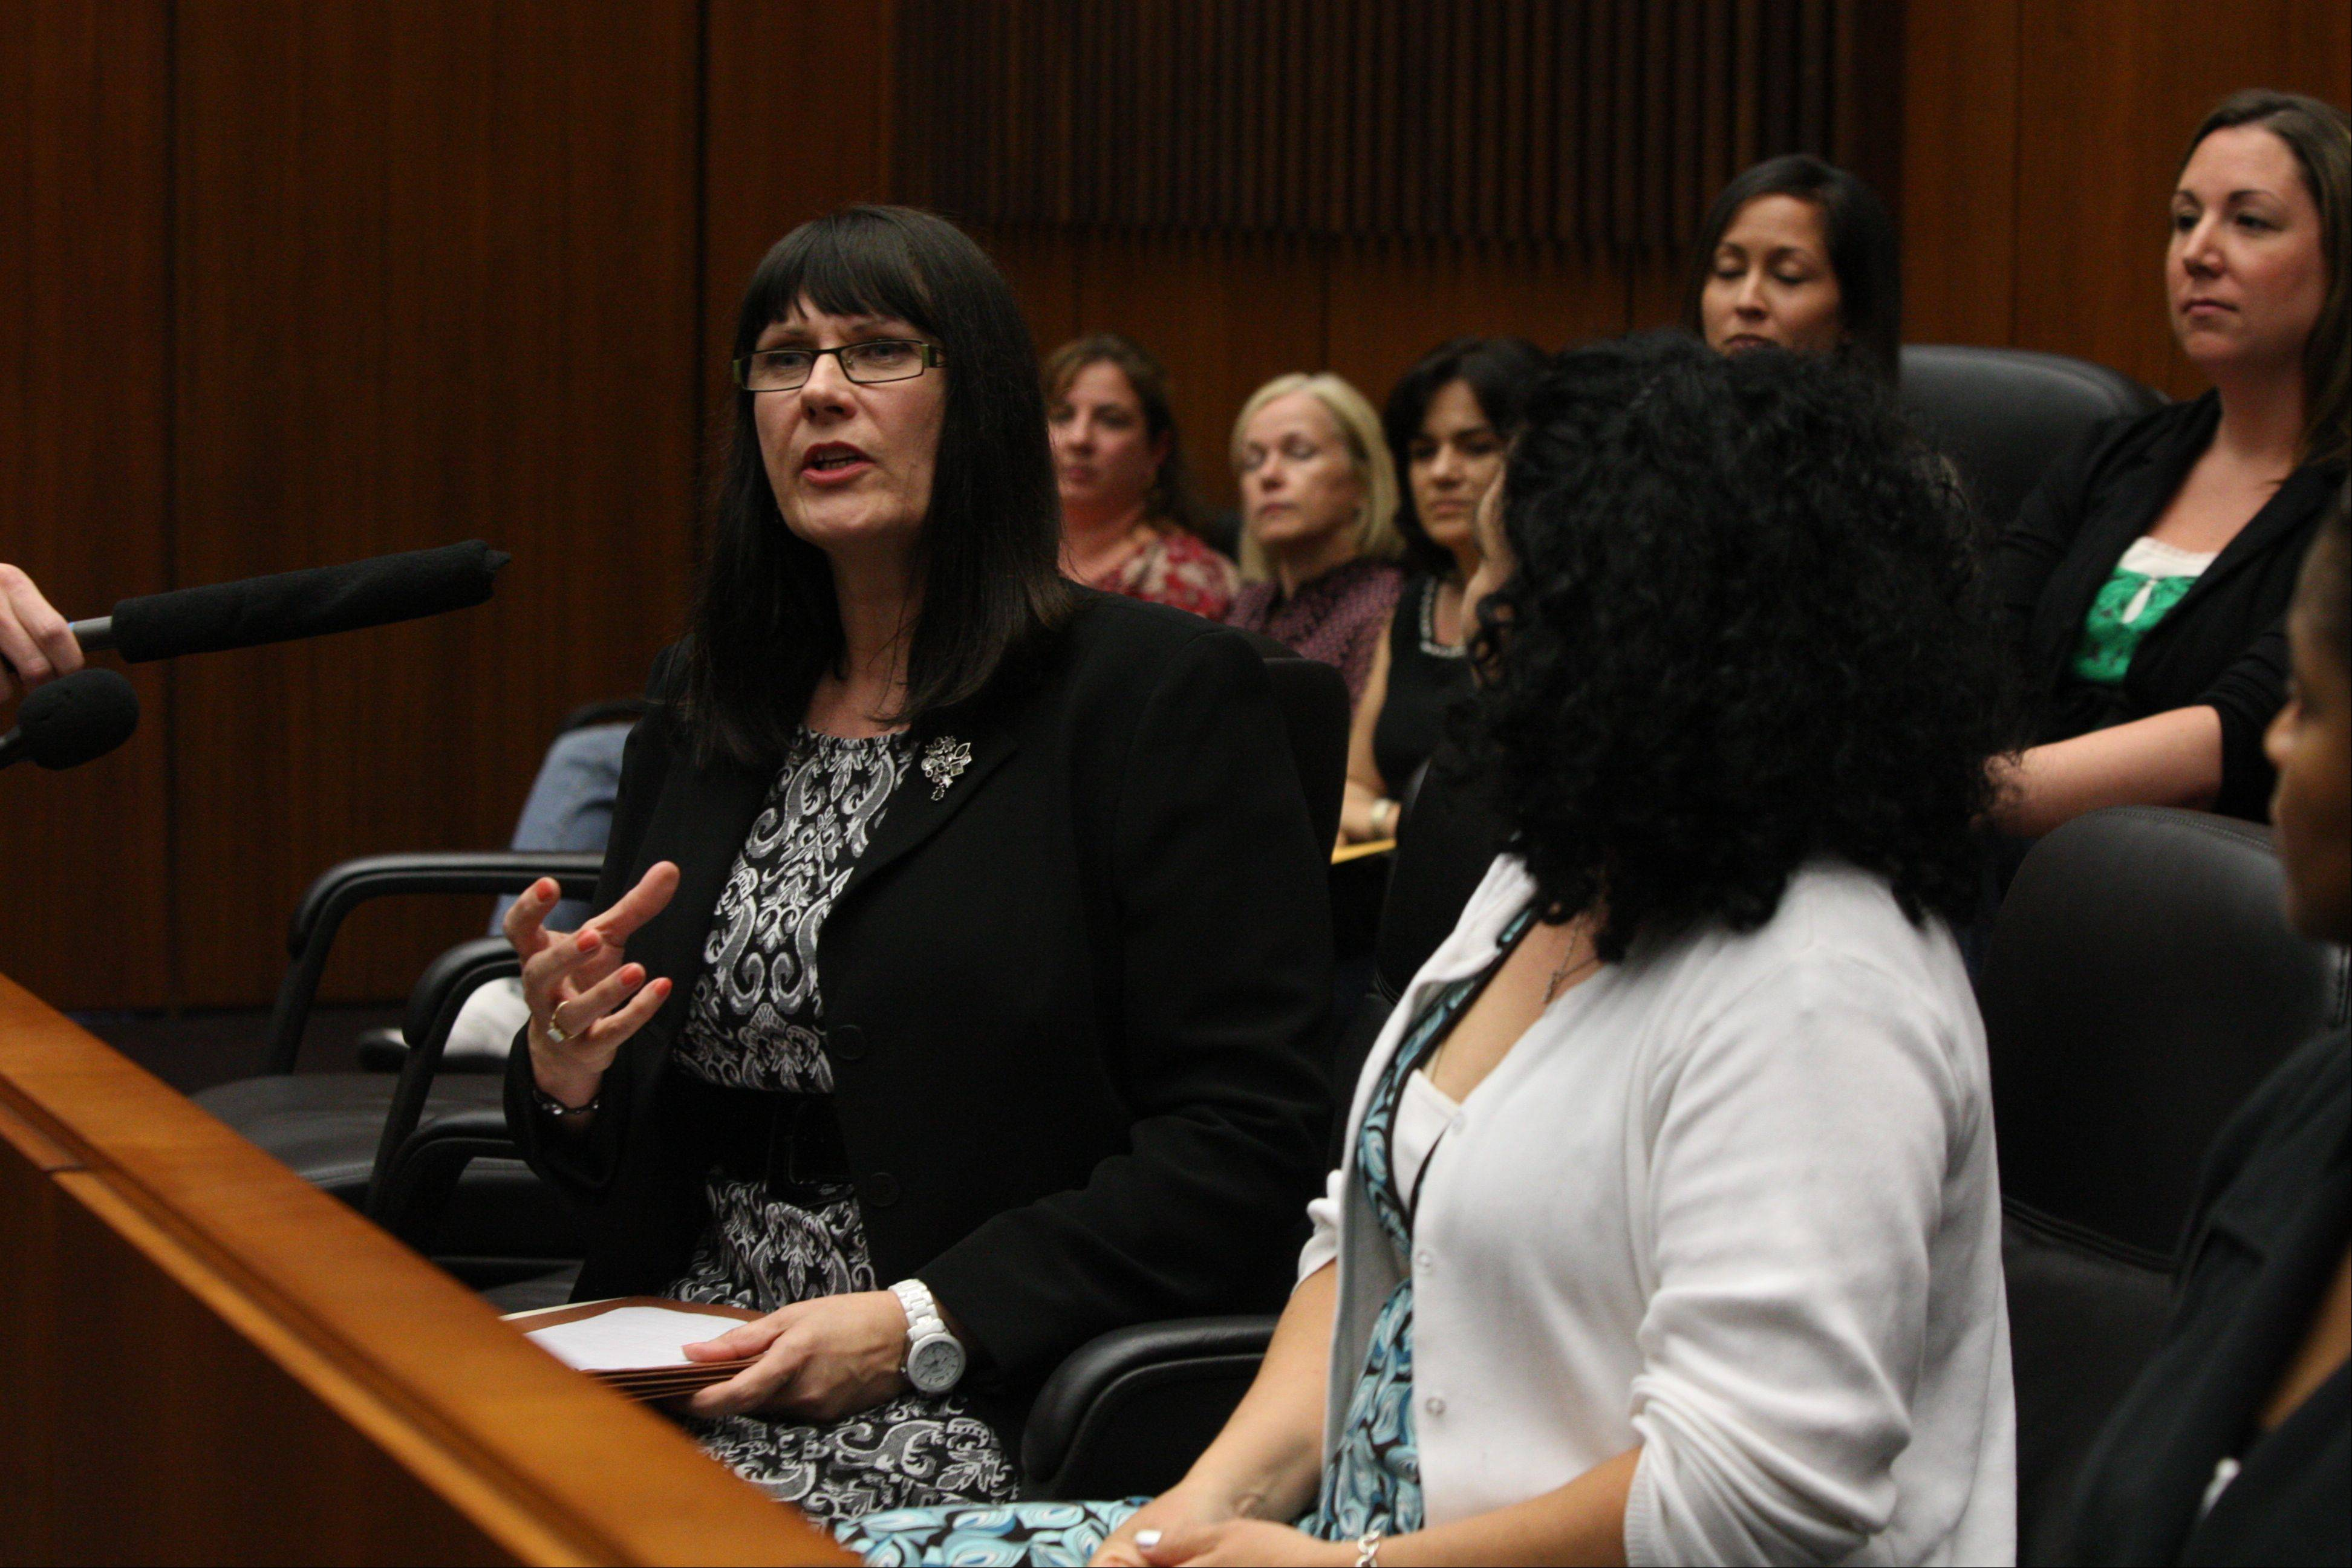 Jury forewoman Connie Wilson of Naperville speaks out on the trial, along with her fellow jurors, following a guilty verdict on former Illinois governor Rod Blagojevich Monday.